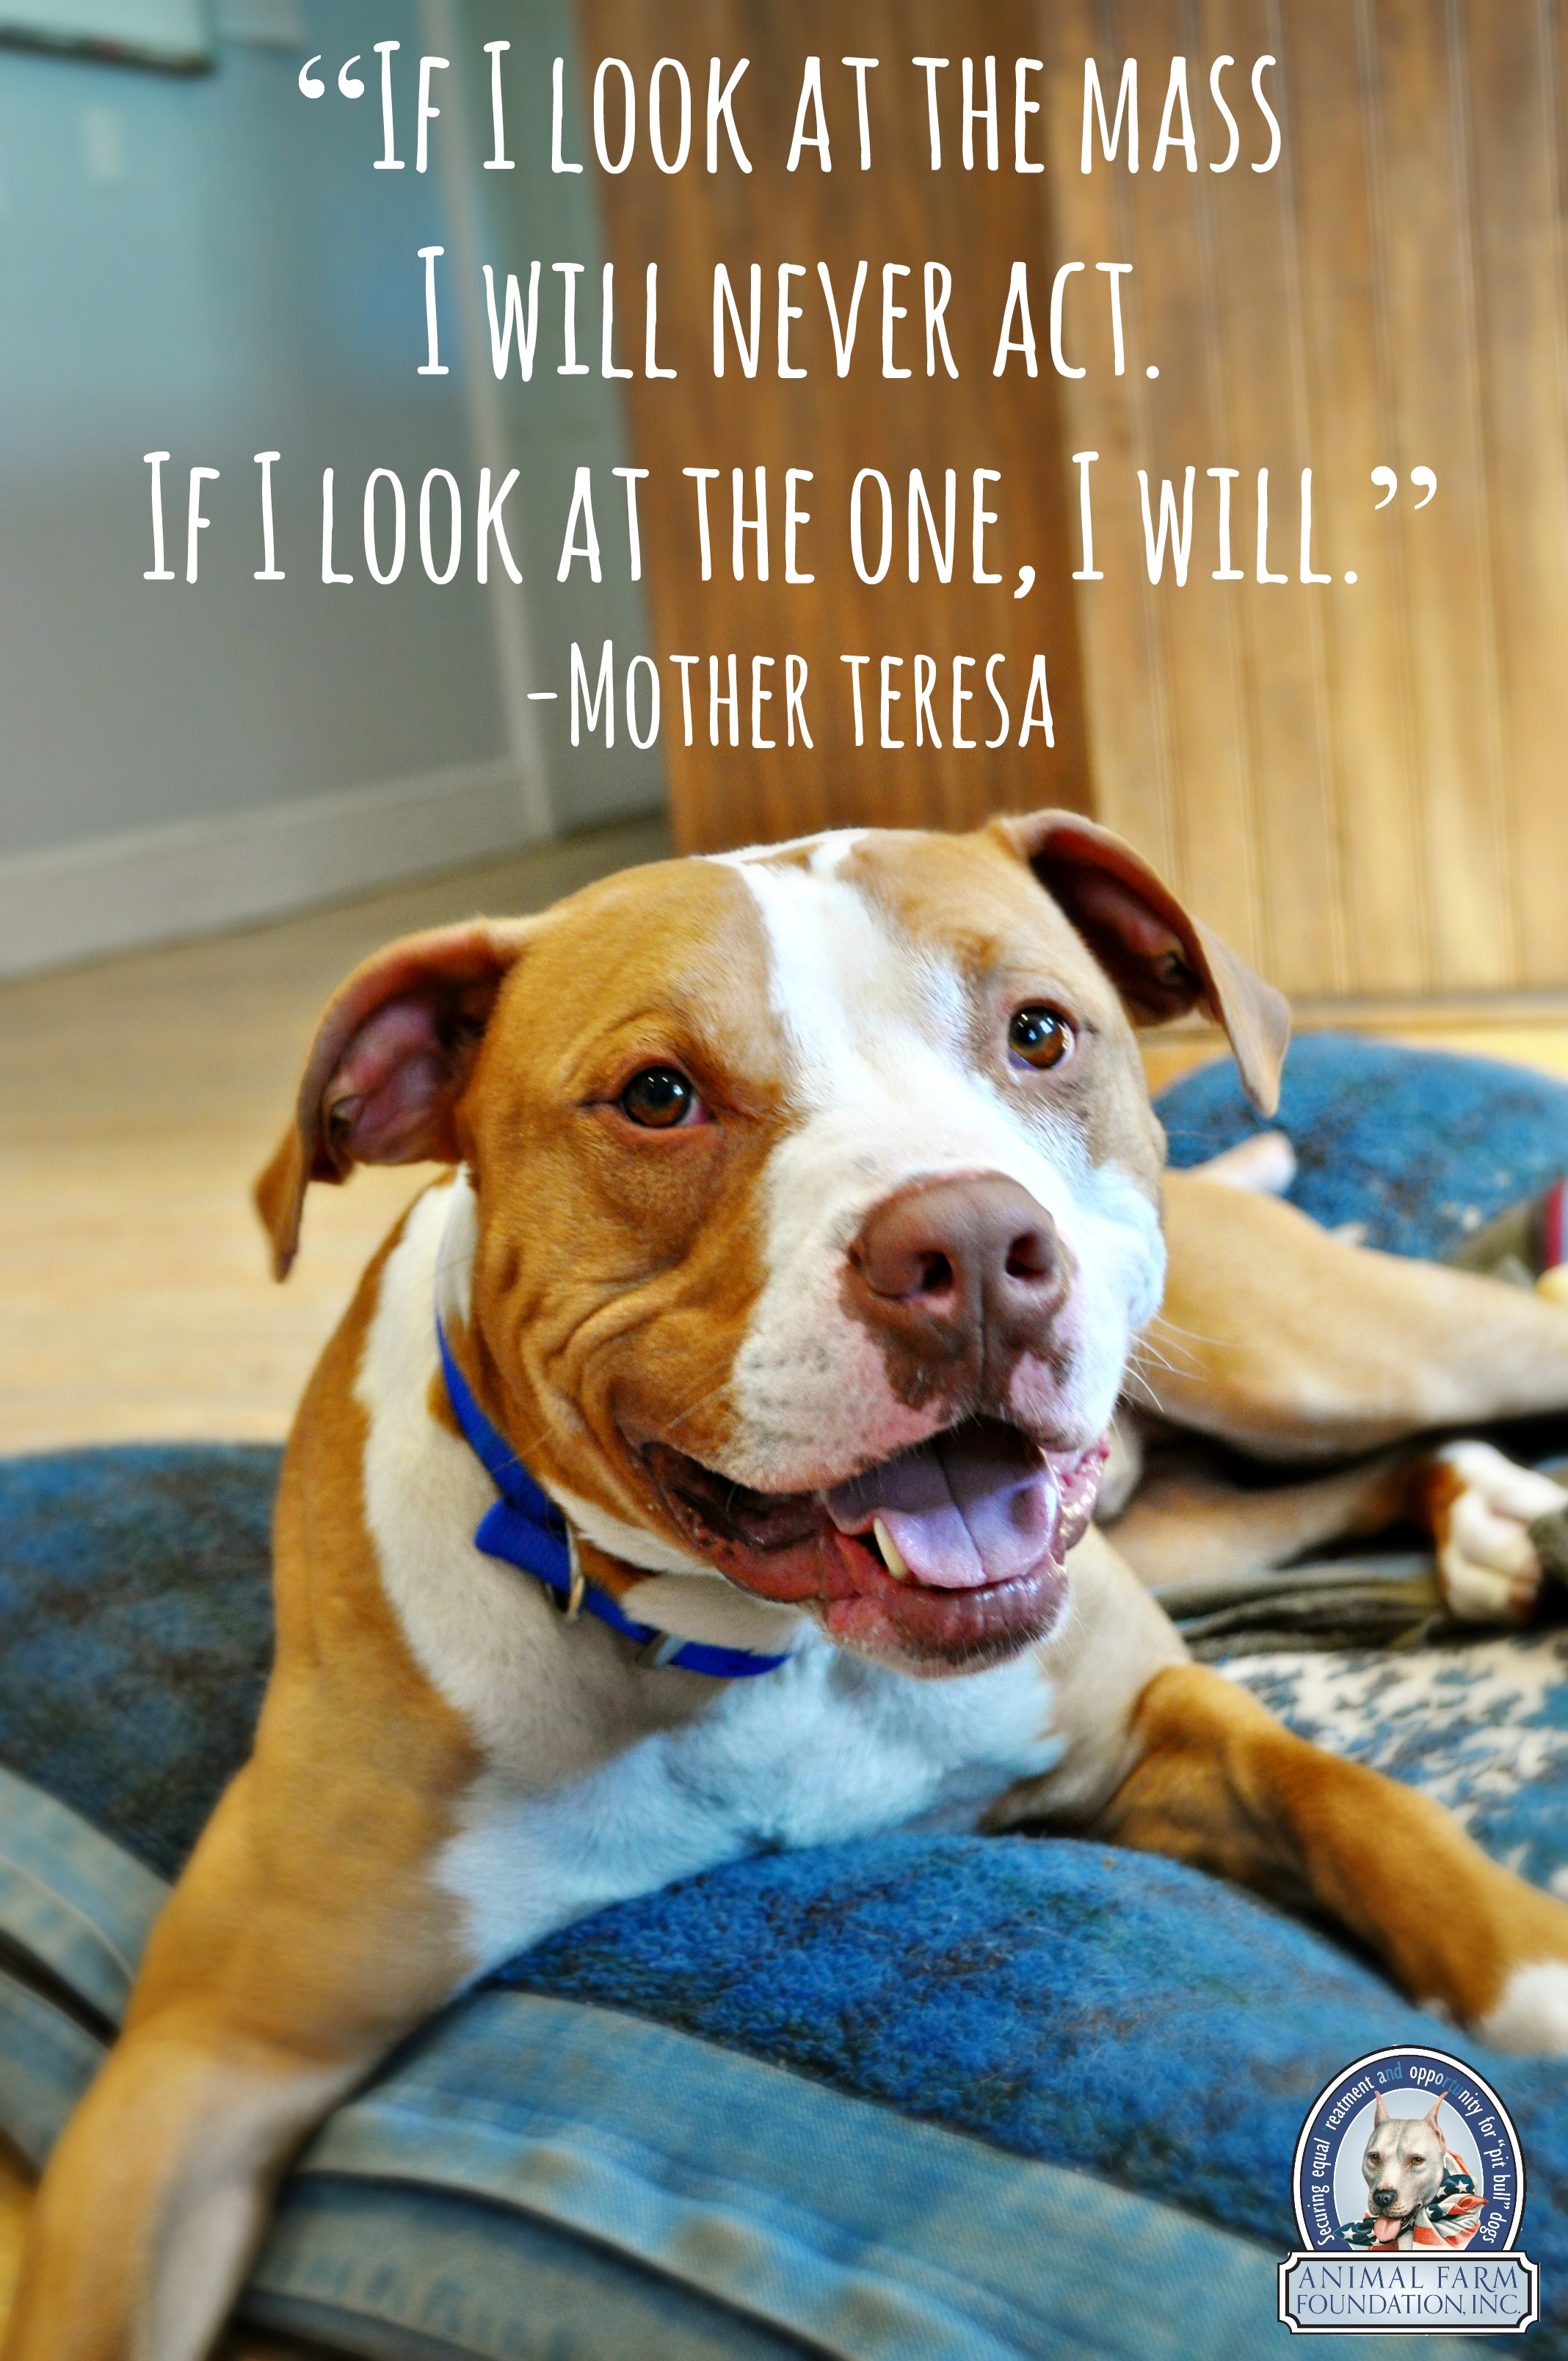 Pitbull Dog Quotes How To Stop My Dog From Eating Her Poop Pitbull Dog Quotes How